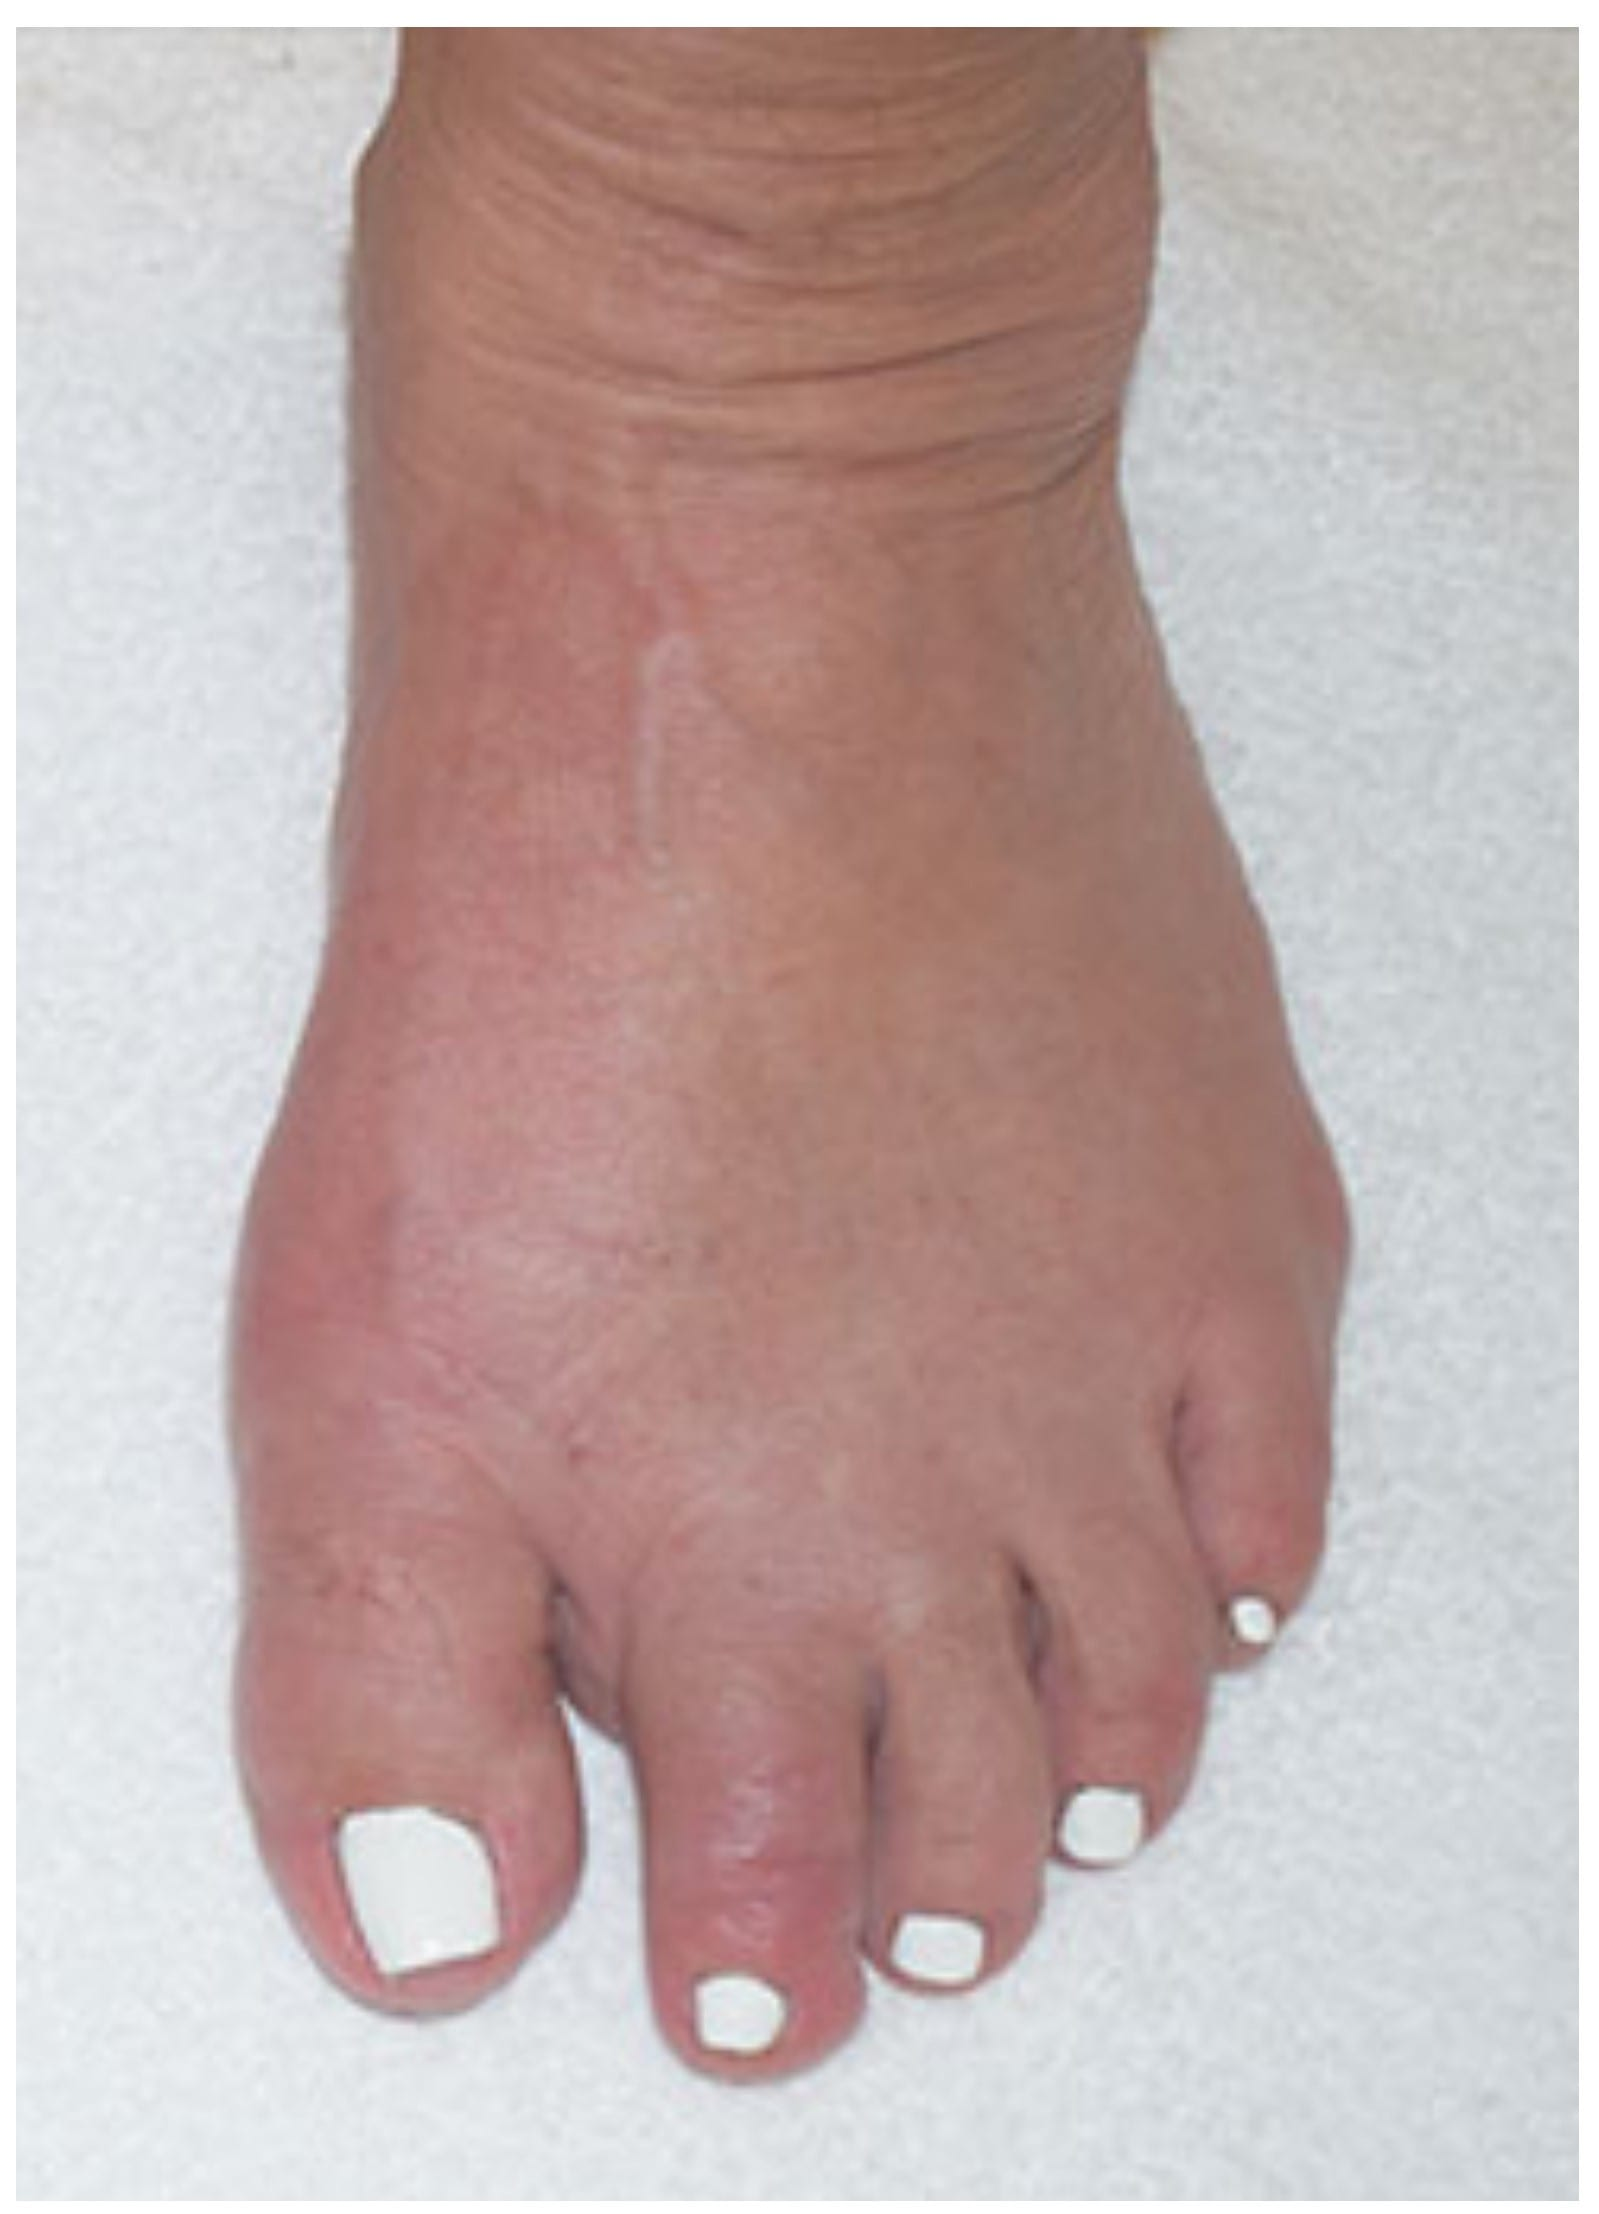 Bunions Treatment After Minimally Invasive Surgery